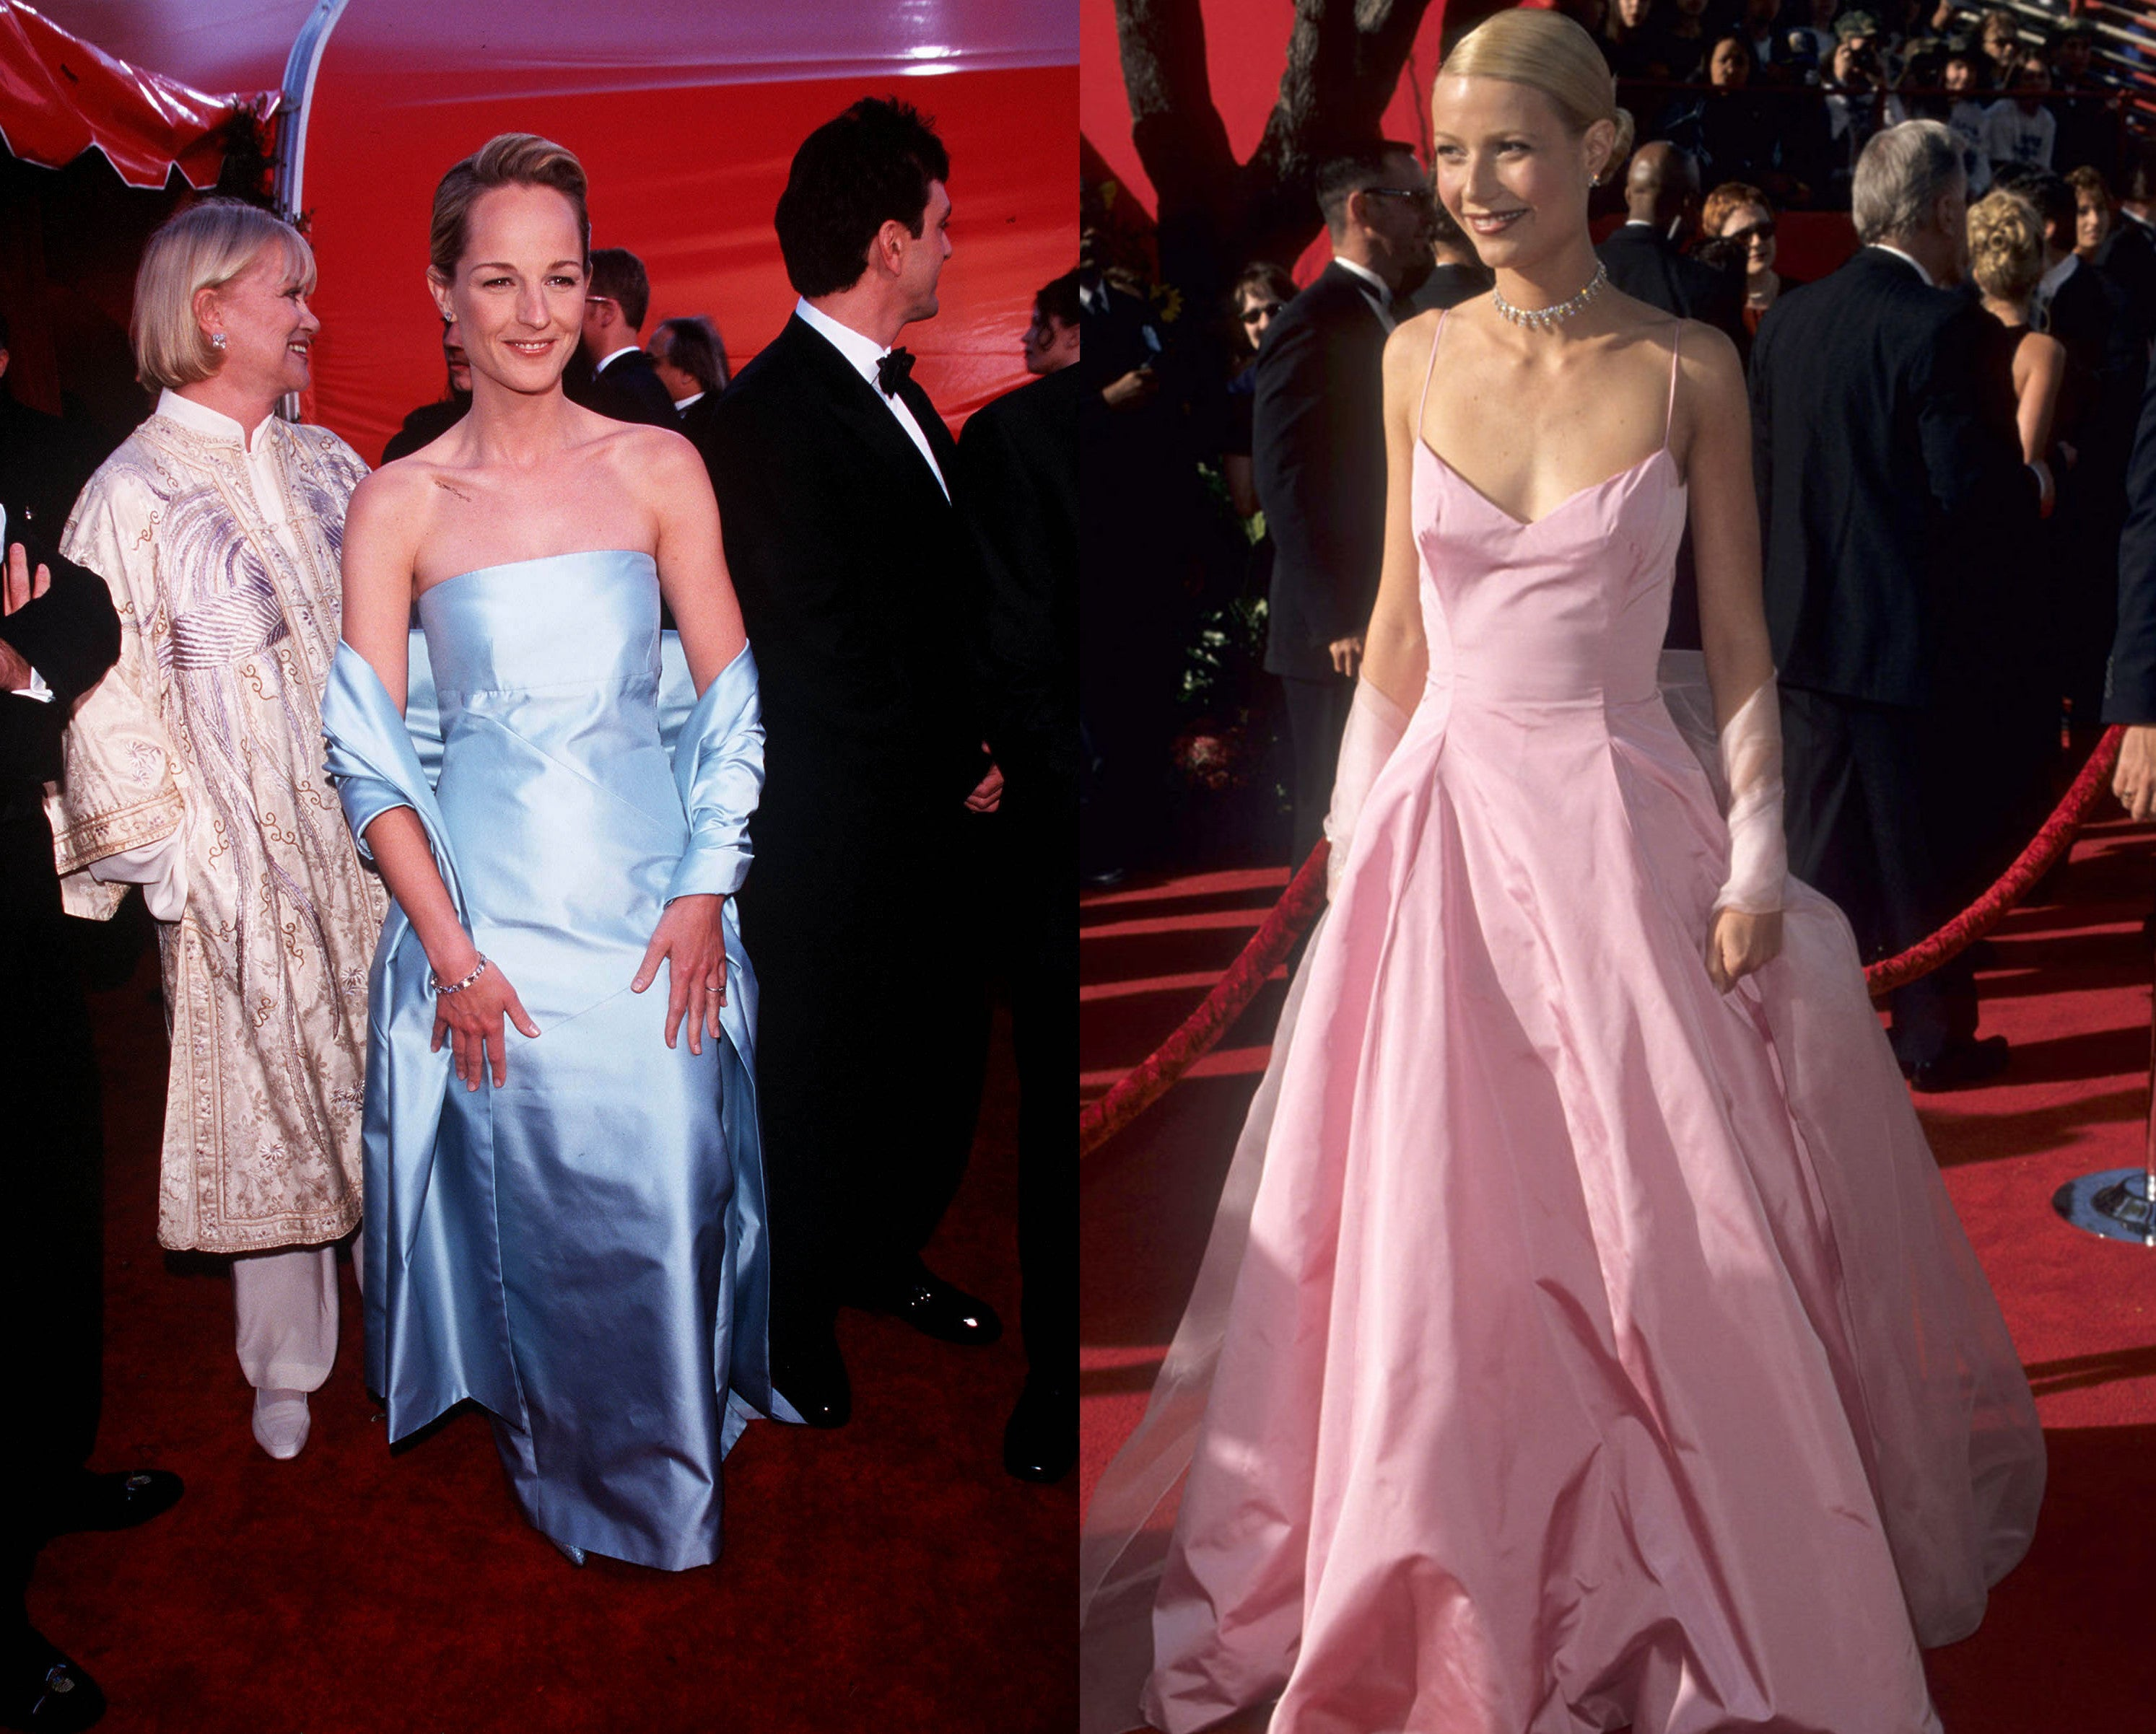 Helen Hunt and Gwyneth Paltrow at the Oscars